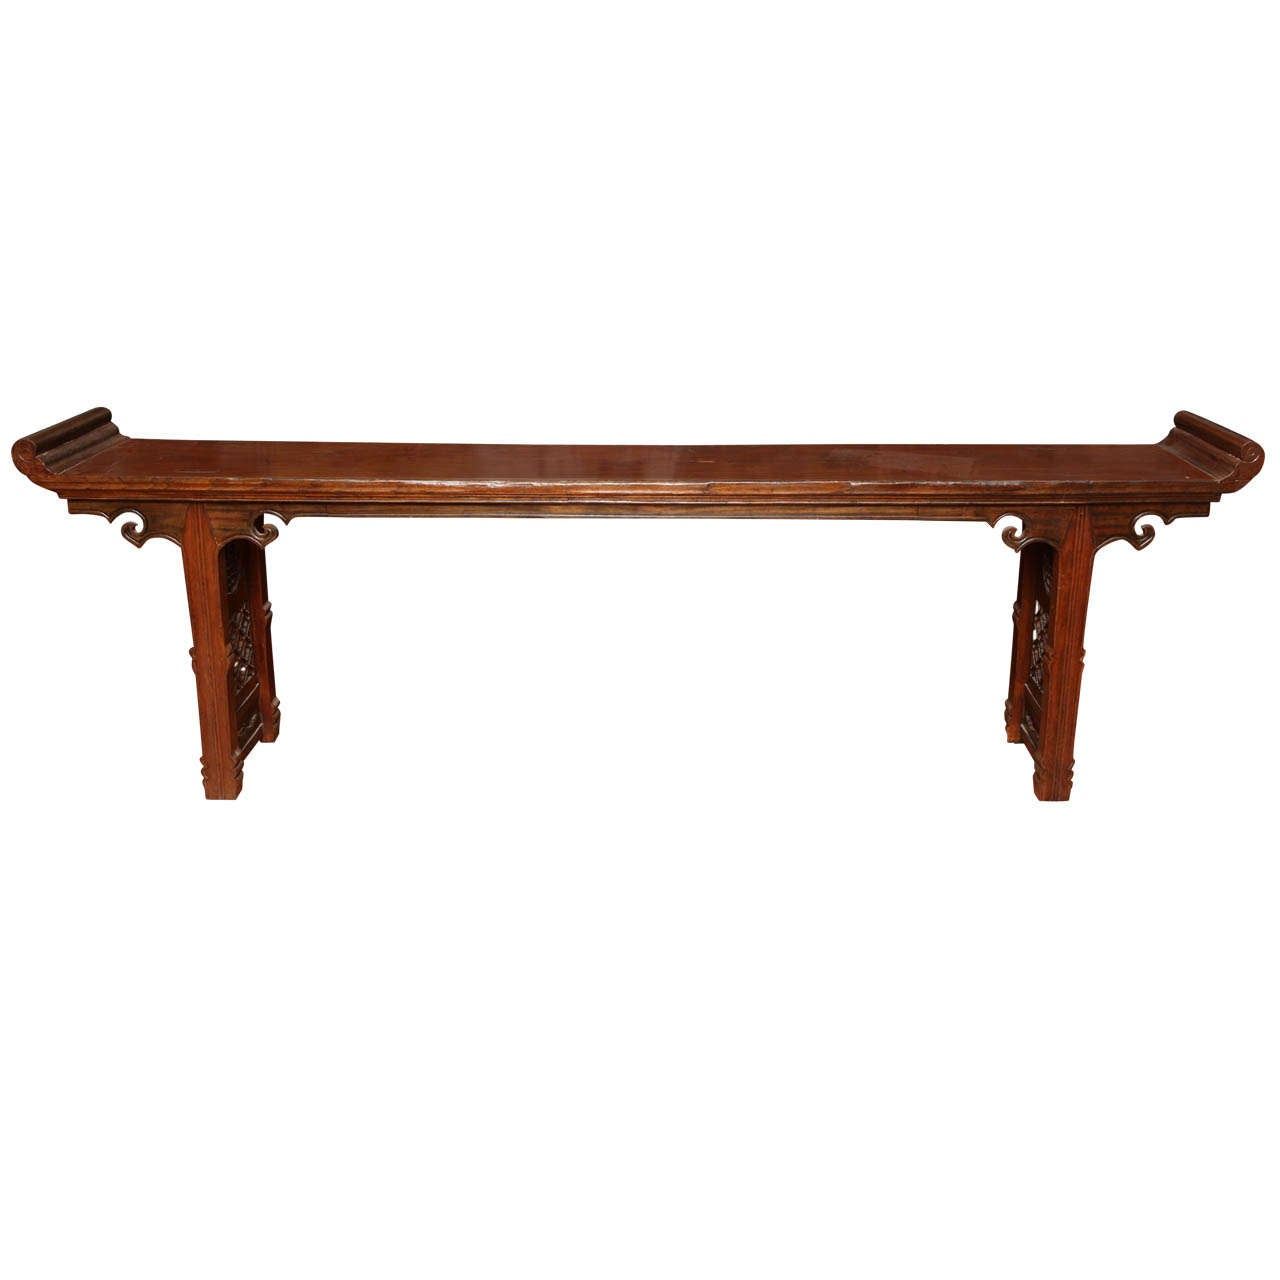 19th century chinese long carved wooden console table with 19th century chinese long carved wooden console table with fretwork design 1 geotapseo Gallery